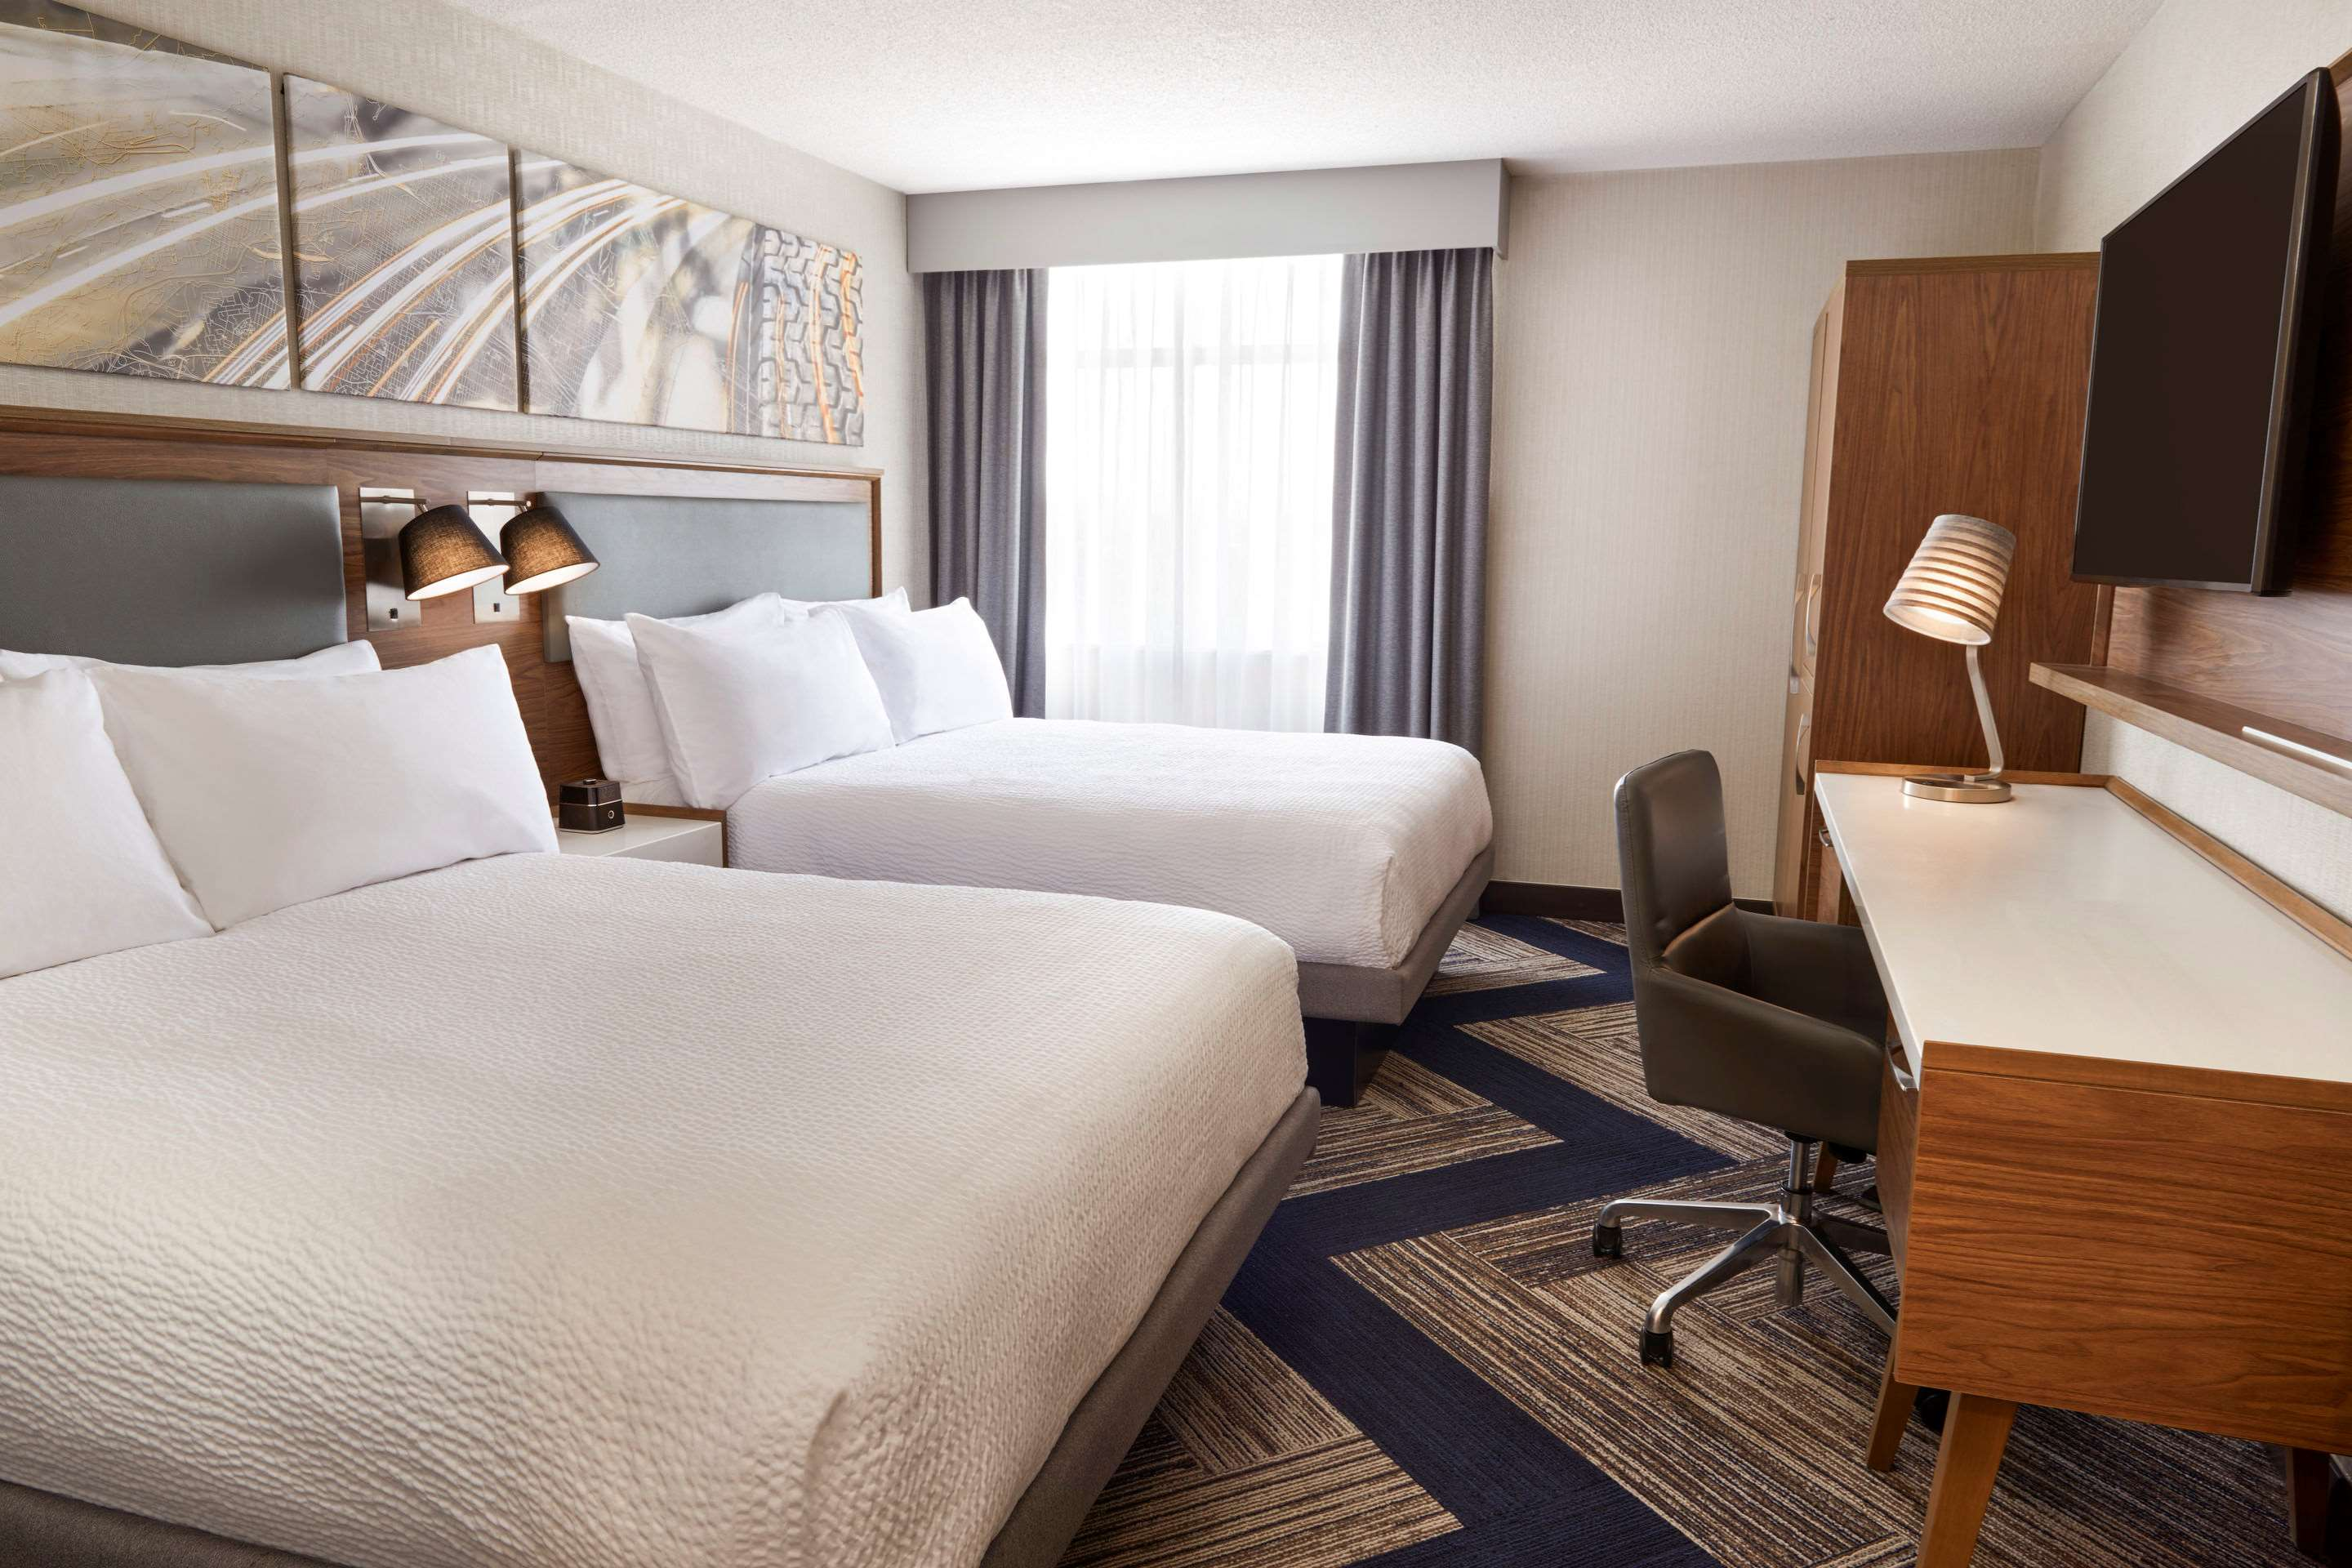 Spacious room with queen beds Comfort Inn Sarnia (519)383-6767